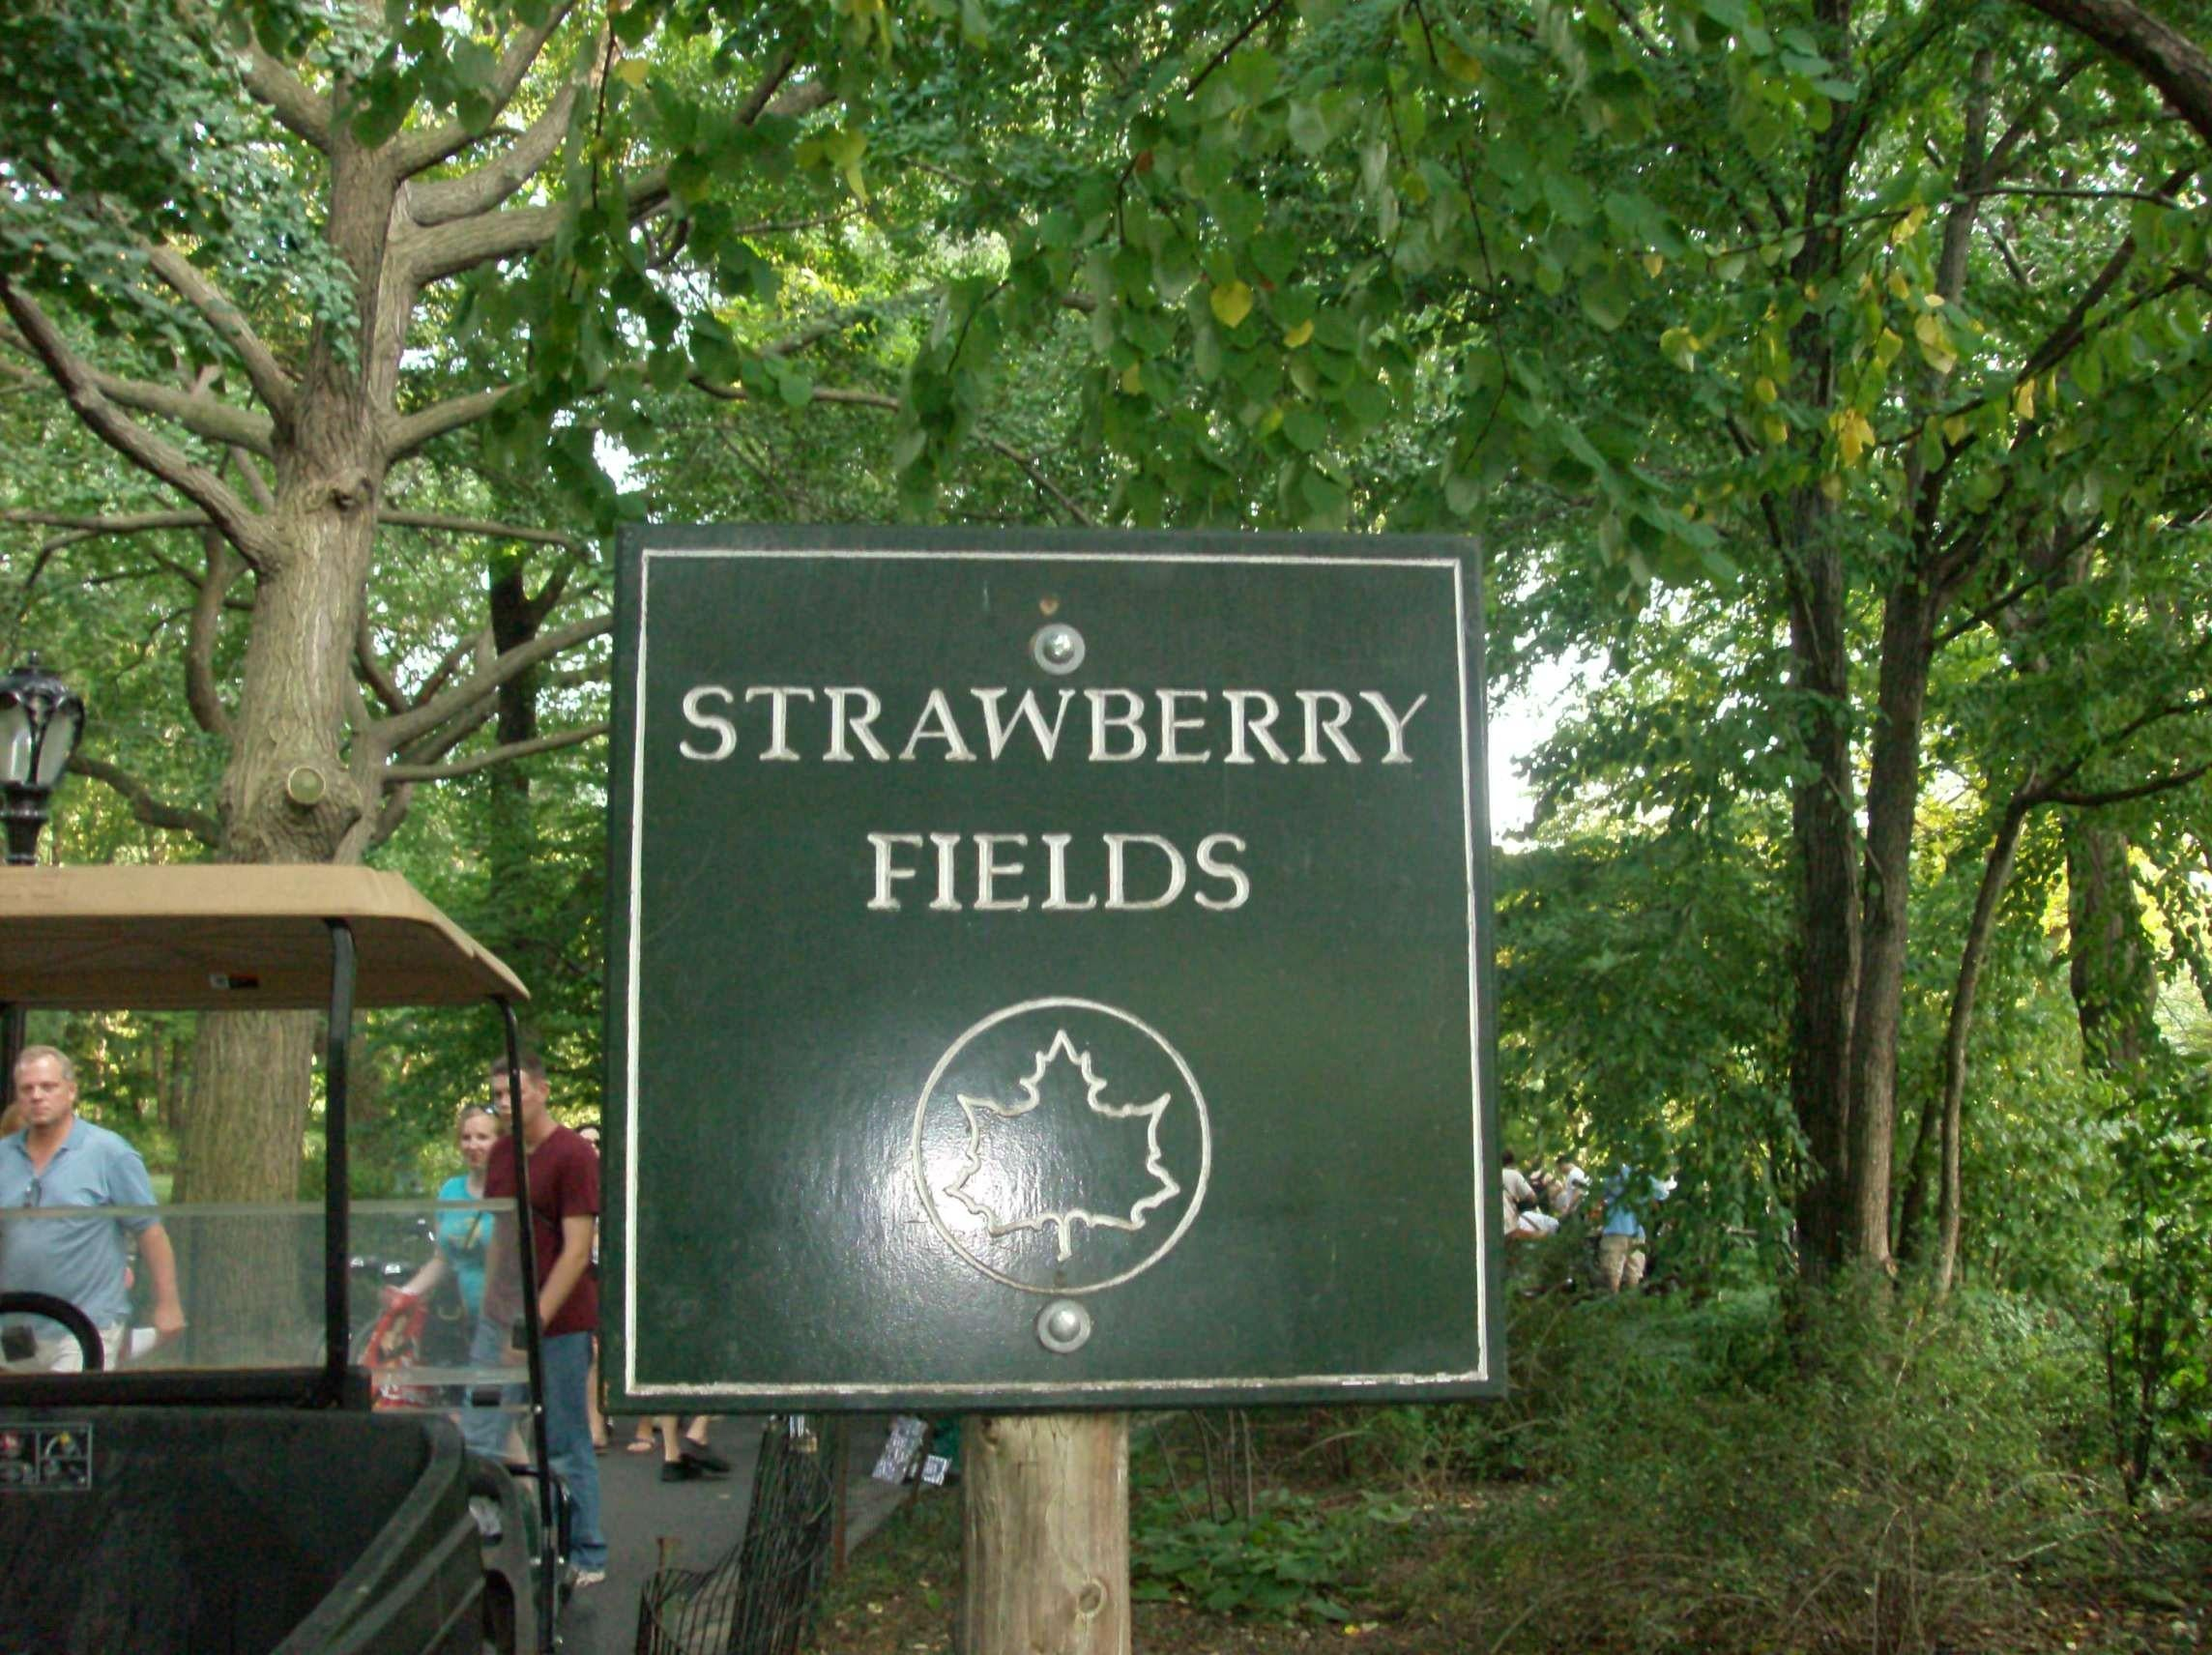 Camino en Strawberry Fields - monumento a John Lennon